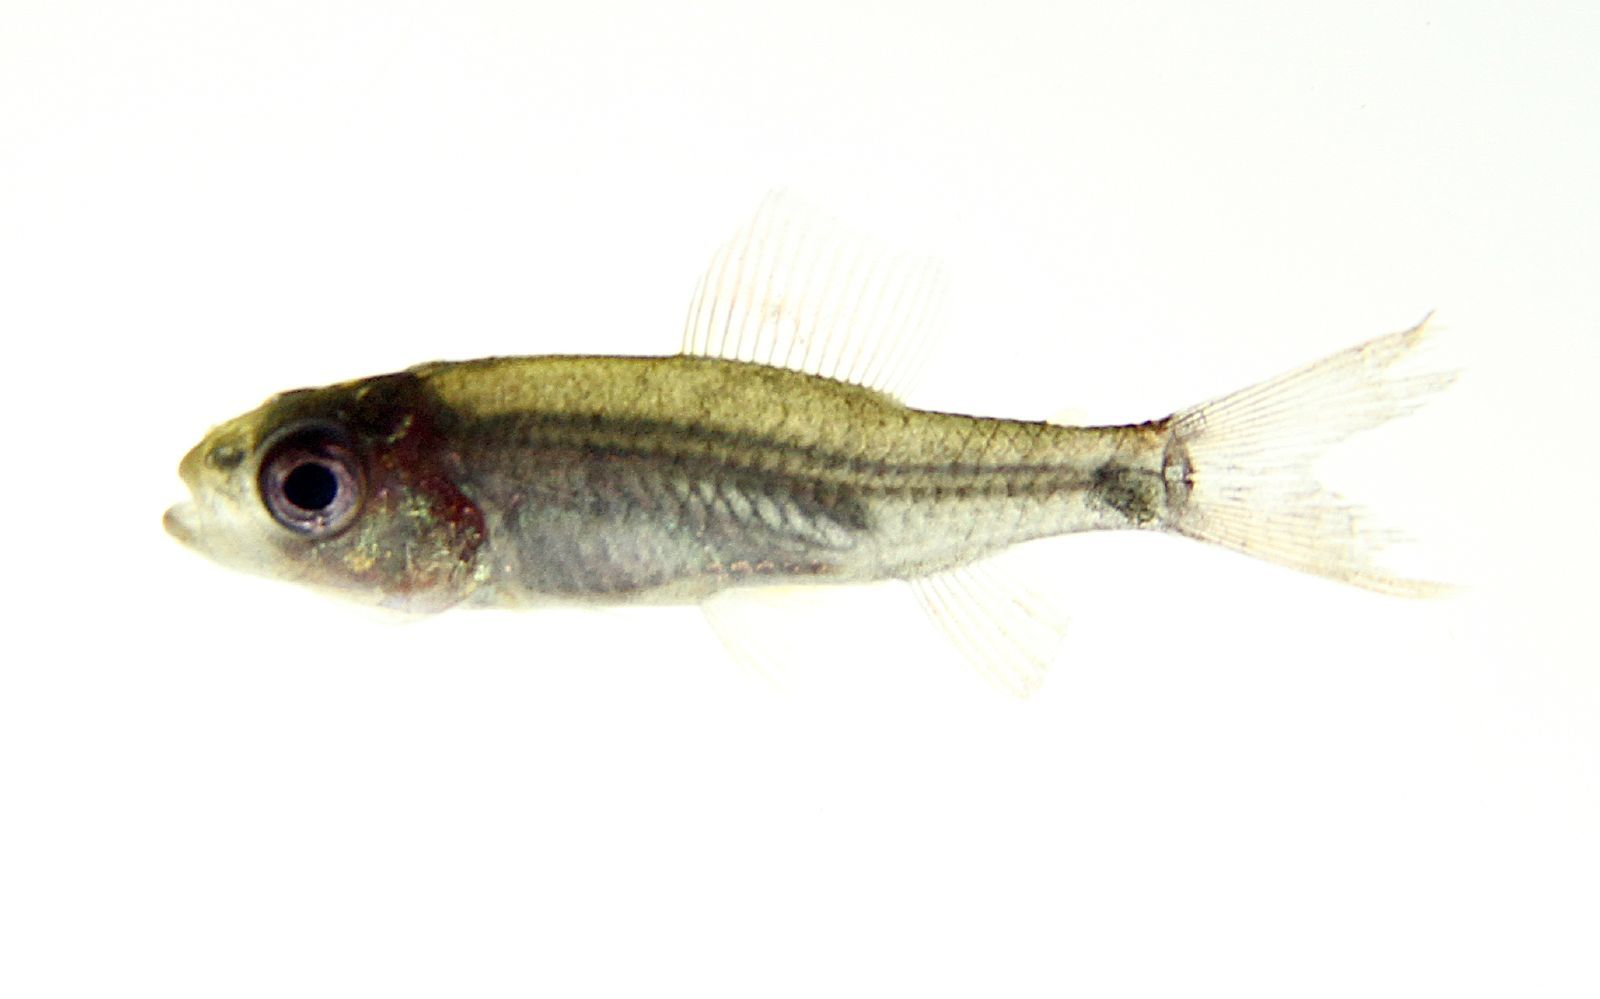 Image of South American darters